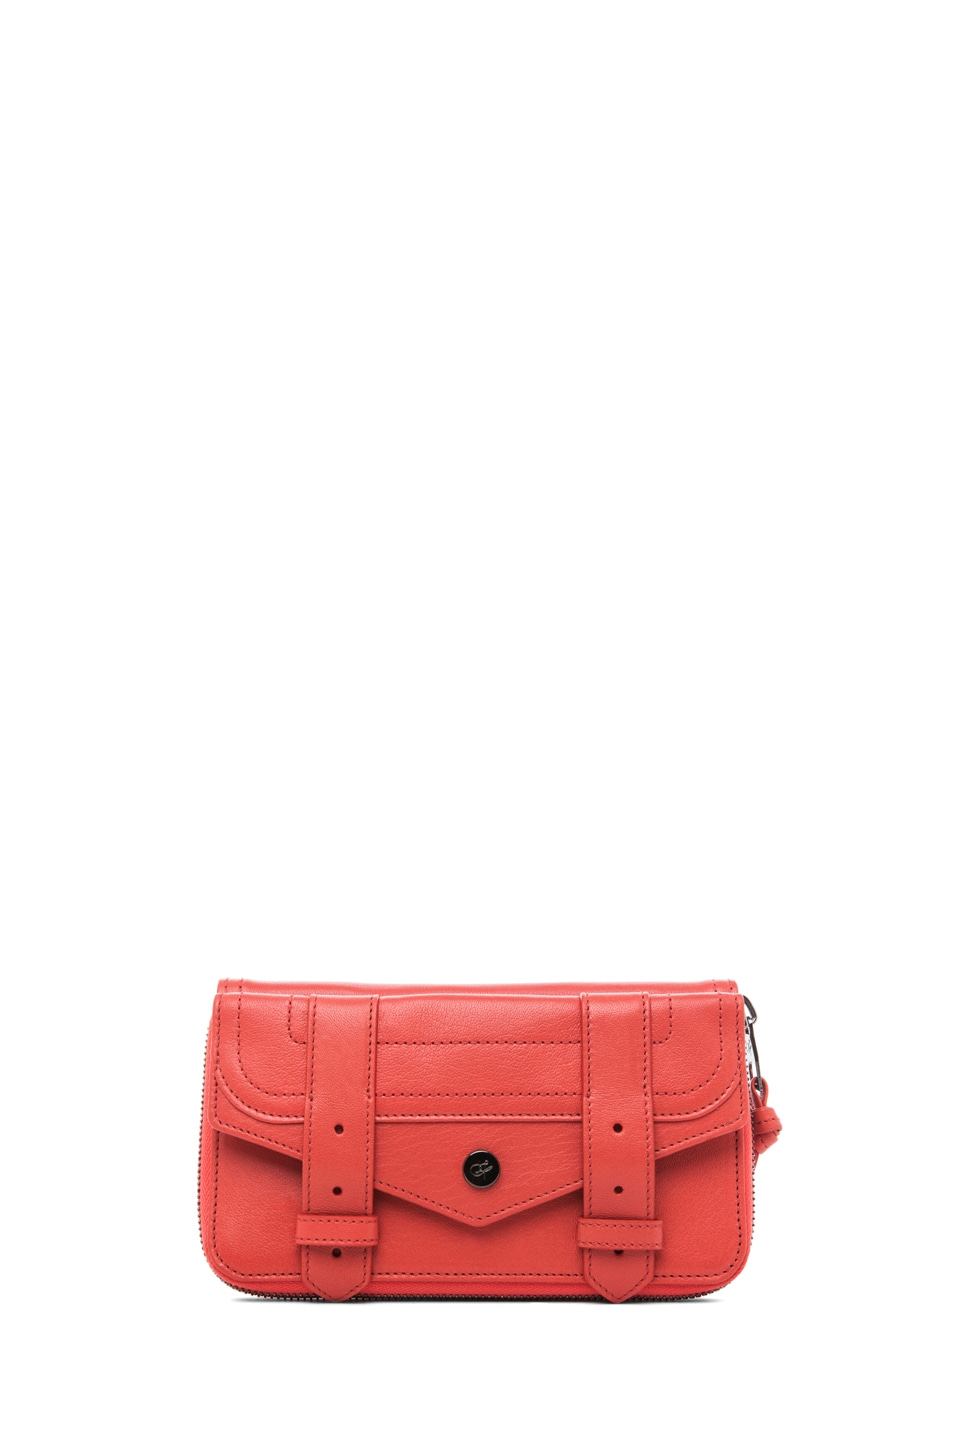 Image 1 of Proenza Schouler PS1 Large Zip Wallet in Deep Coral